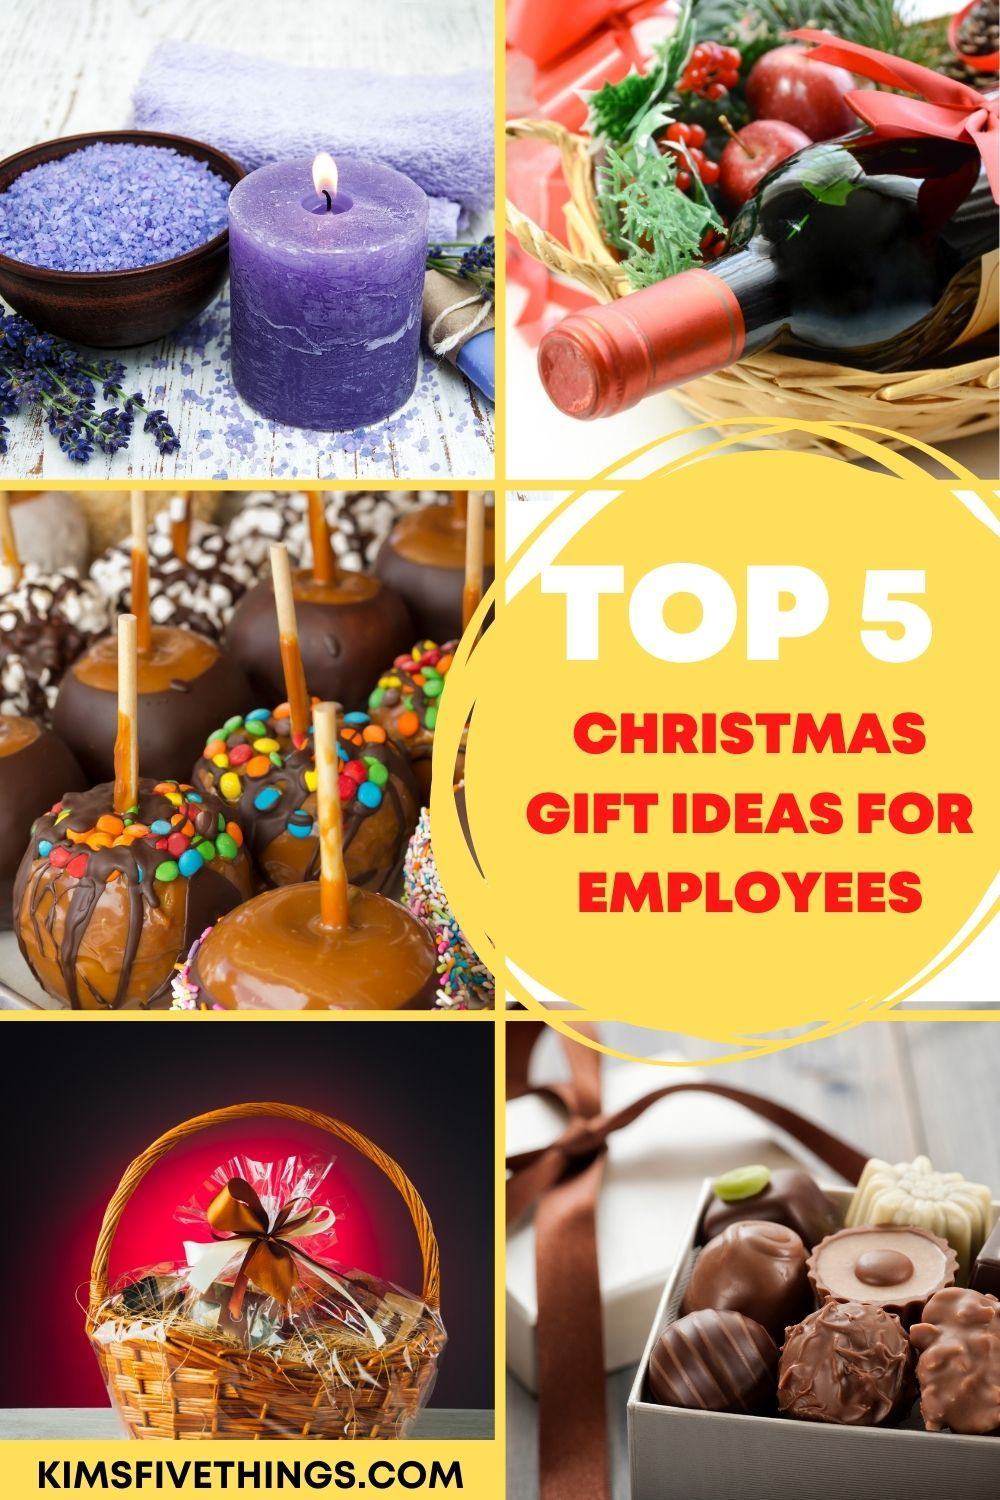 Best Christmas Gifts For Employees 2021 Top 5 Christmas Gifts For Employees Best Employee Gifts 2021 Kims Home Ideas Employee Christmas Gifts Employee Gifts Top 5 Christmas Gifts